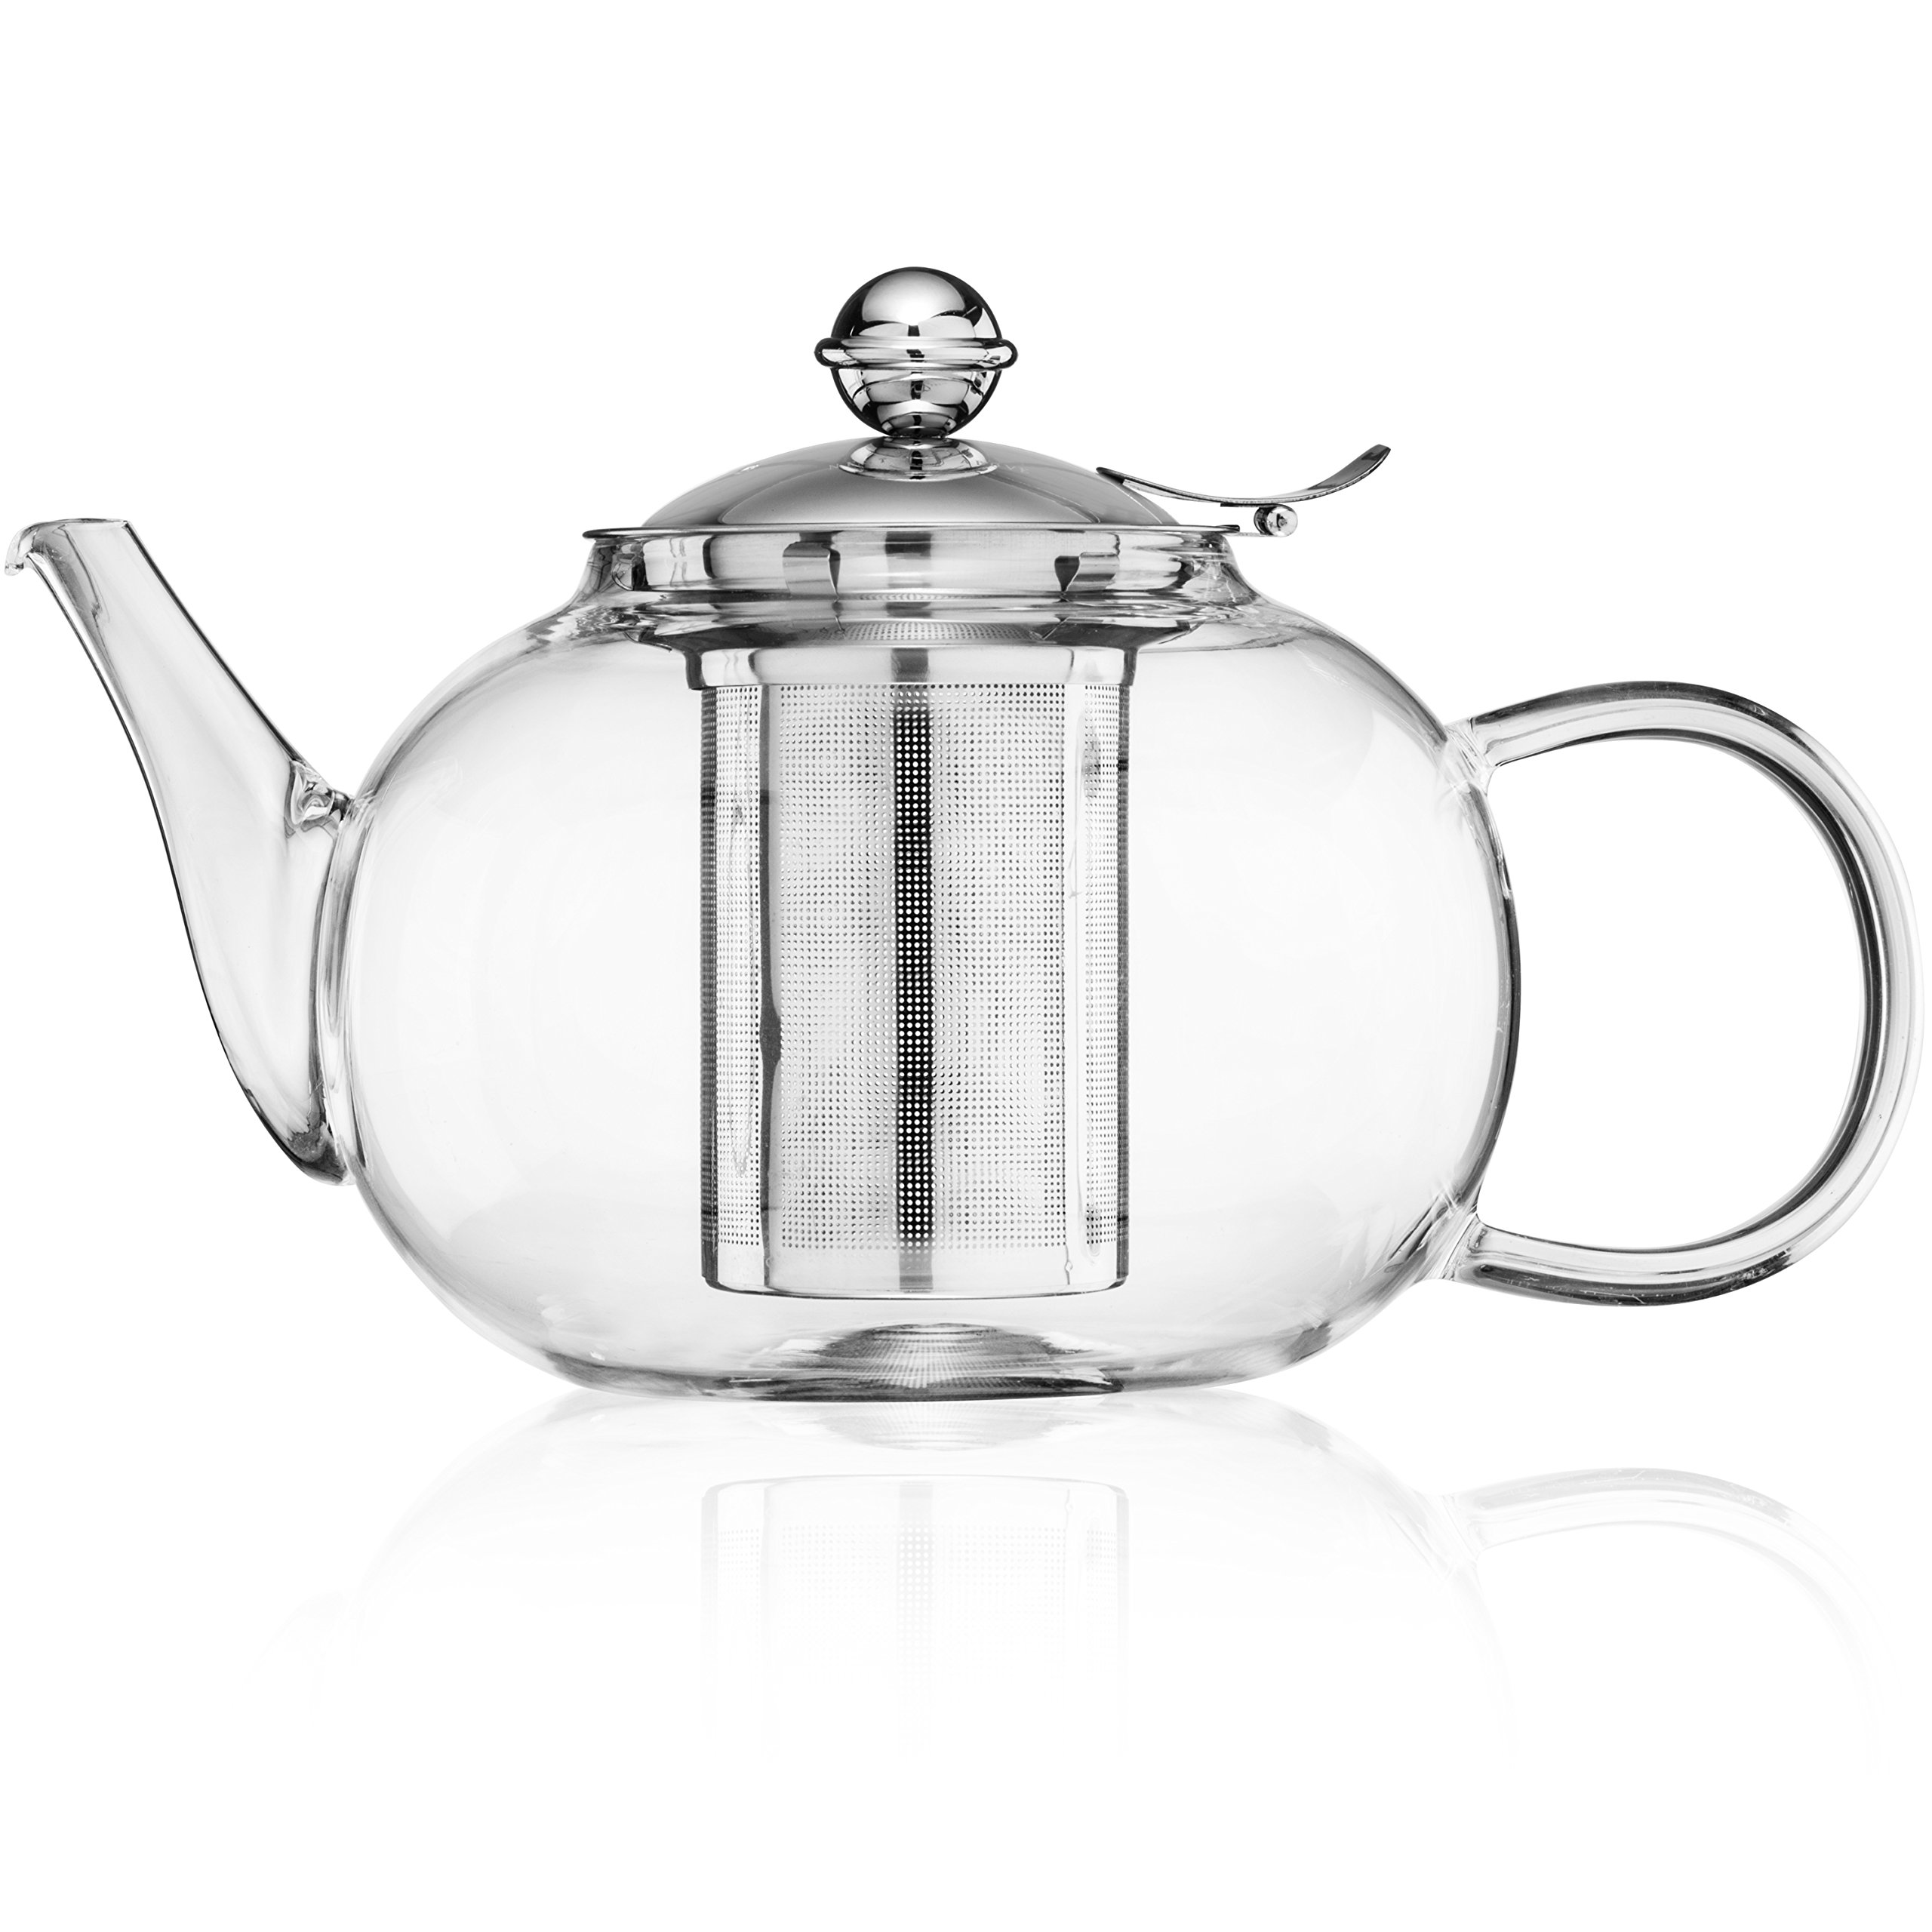 Nest Above Glass Teapot Kettle with Stainless Steel Infuser - Stovetop Safe - Blooming and Loose Leaf Tea - Large Capacity 1200ml/40oz by Nest Above